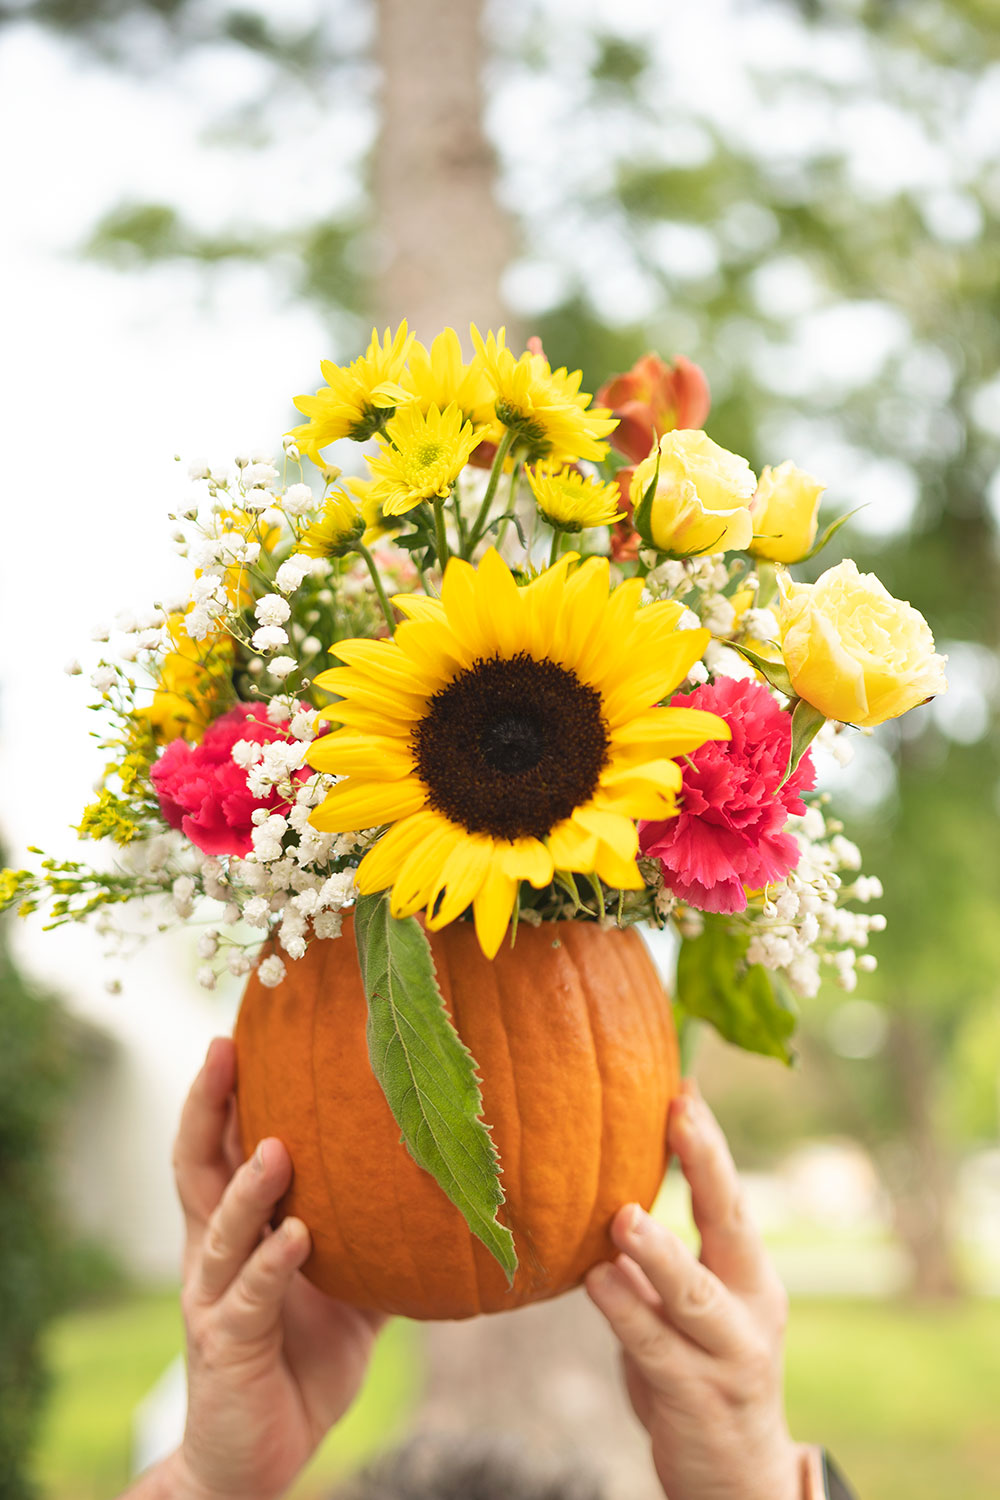 Hands holding a pumpkin with fresh flowers coming out its top